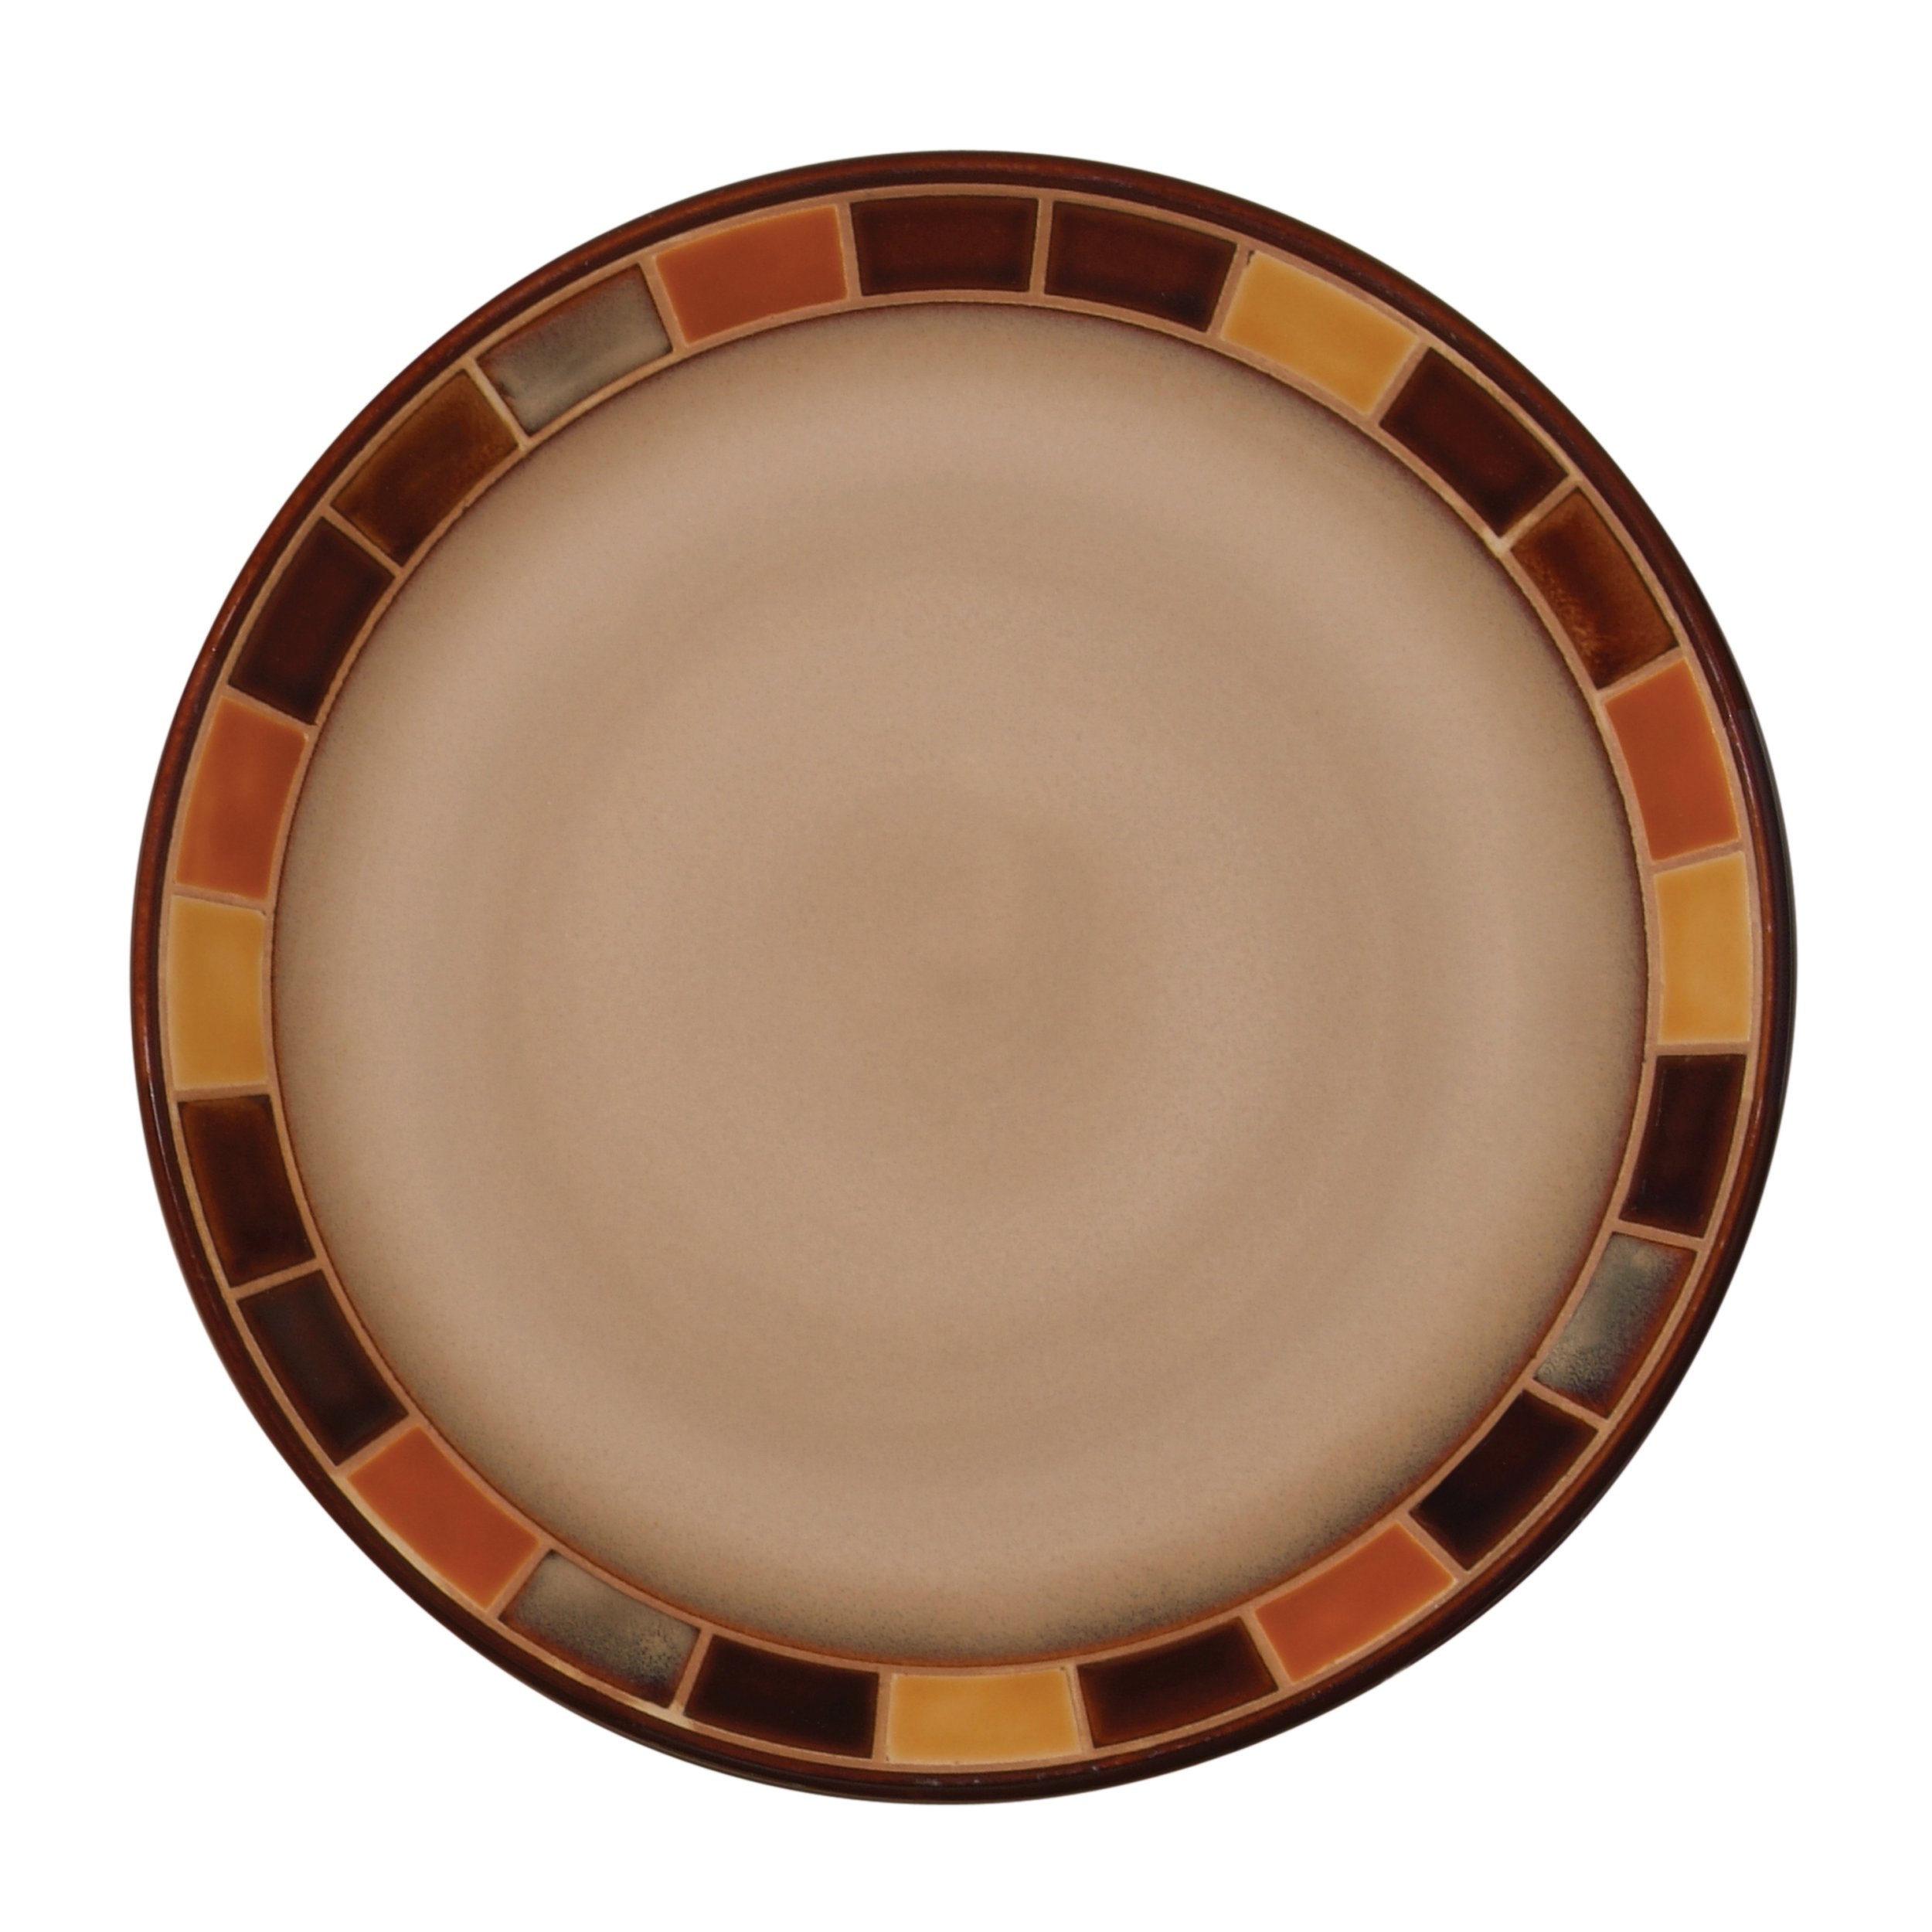 Gibson 70736.16RM Casa Estebana 16-piece Dinnerware Set Service for 4, Beige and Brown by Gibson (Image #4)